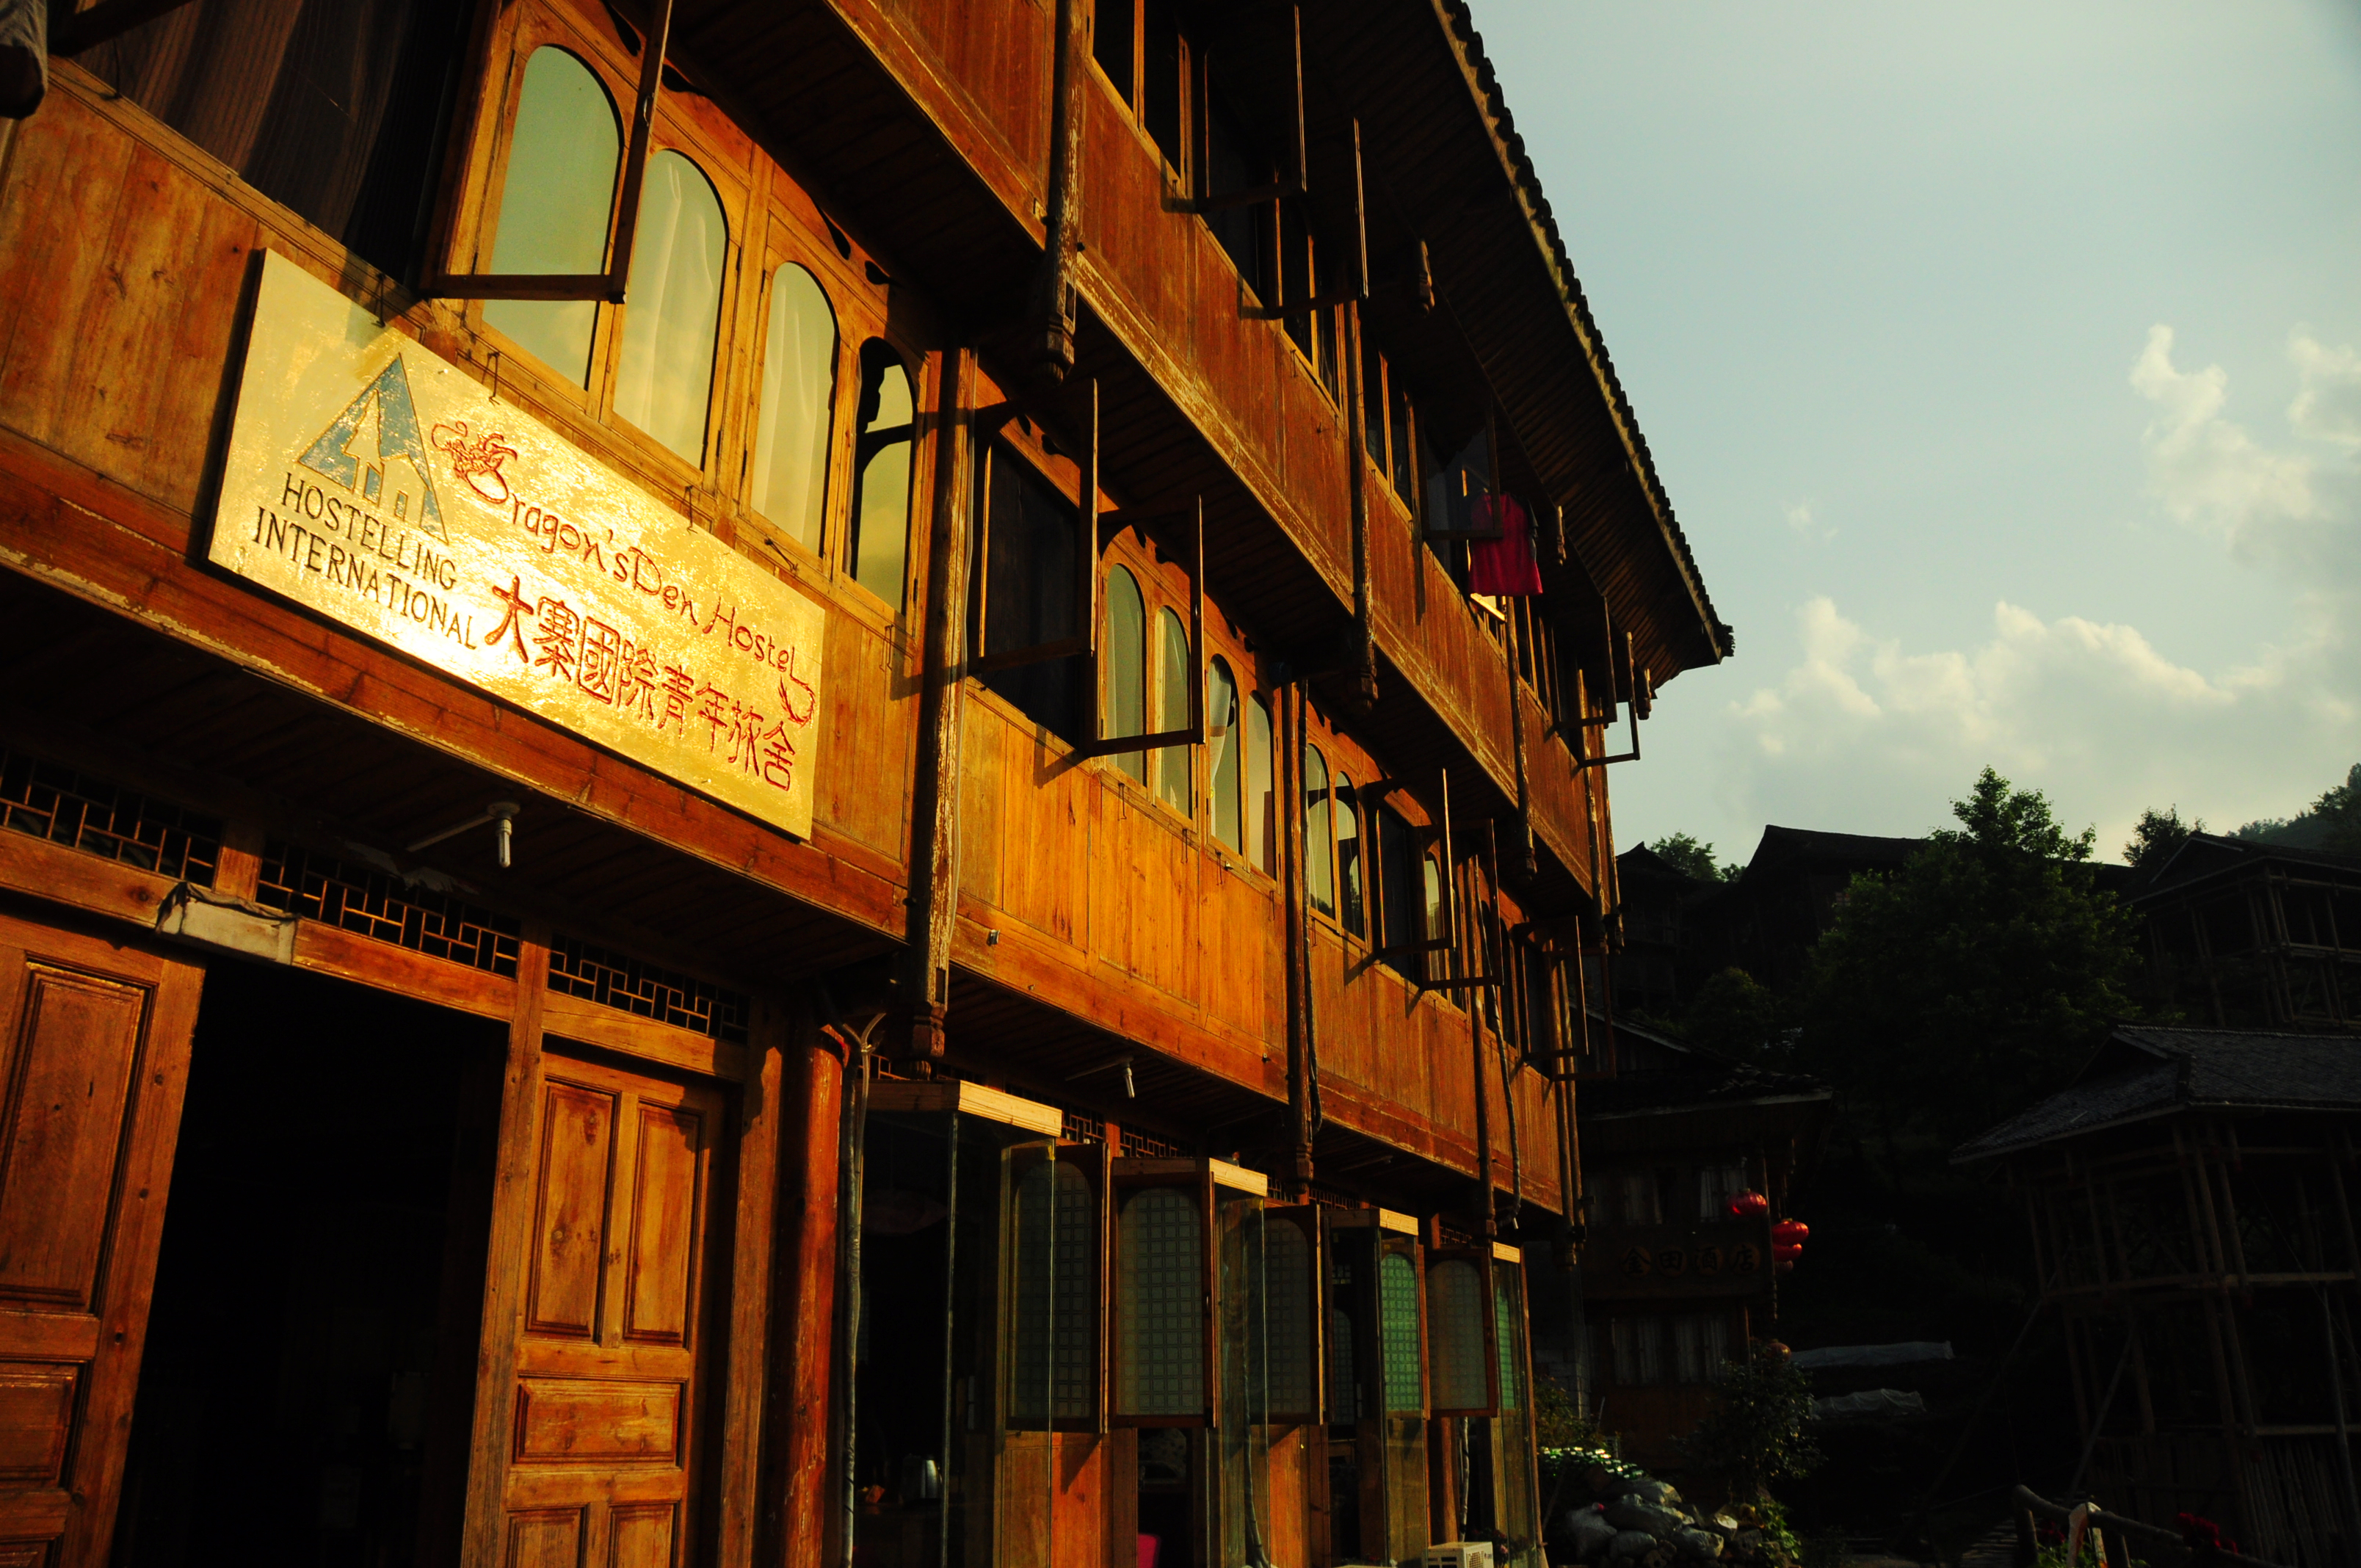 Longsheng Dazhai International Youth Hostel